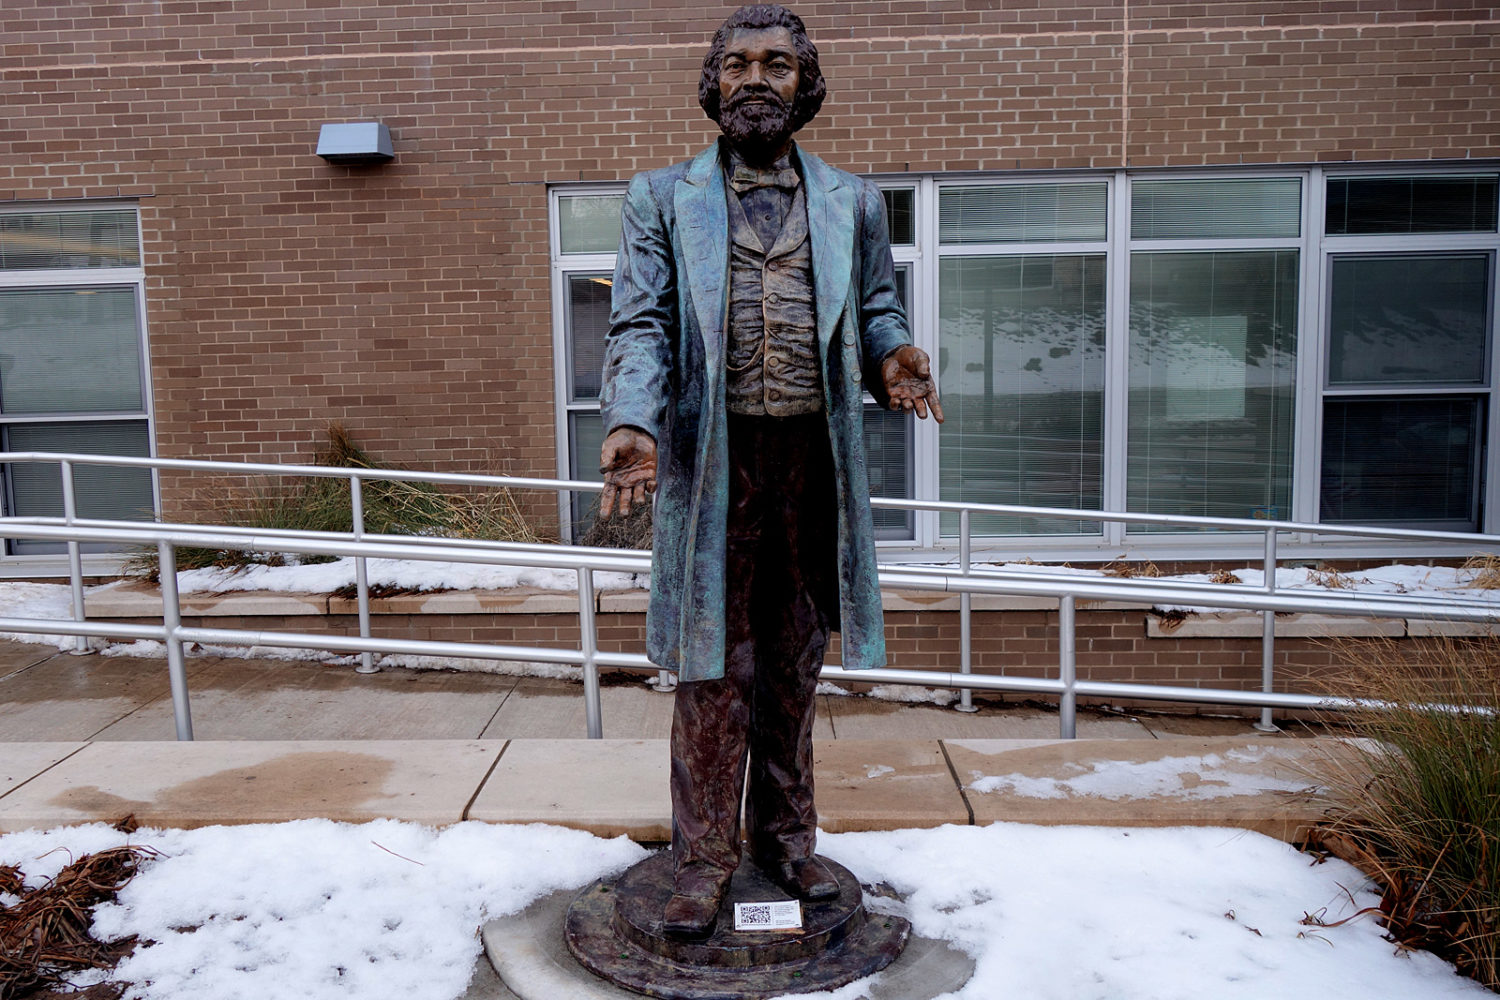 Frederick Douglas plastic statue in front of his former home on South Avenue in Rochester, New York